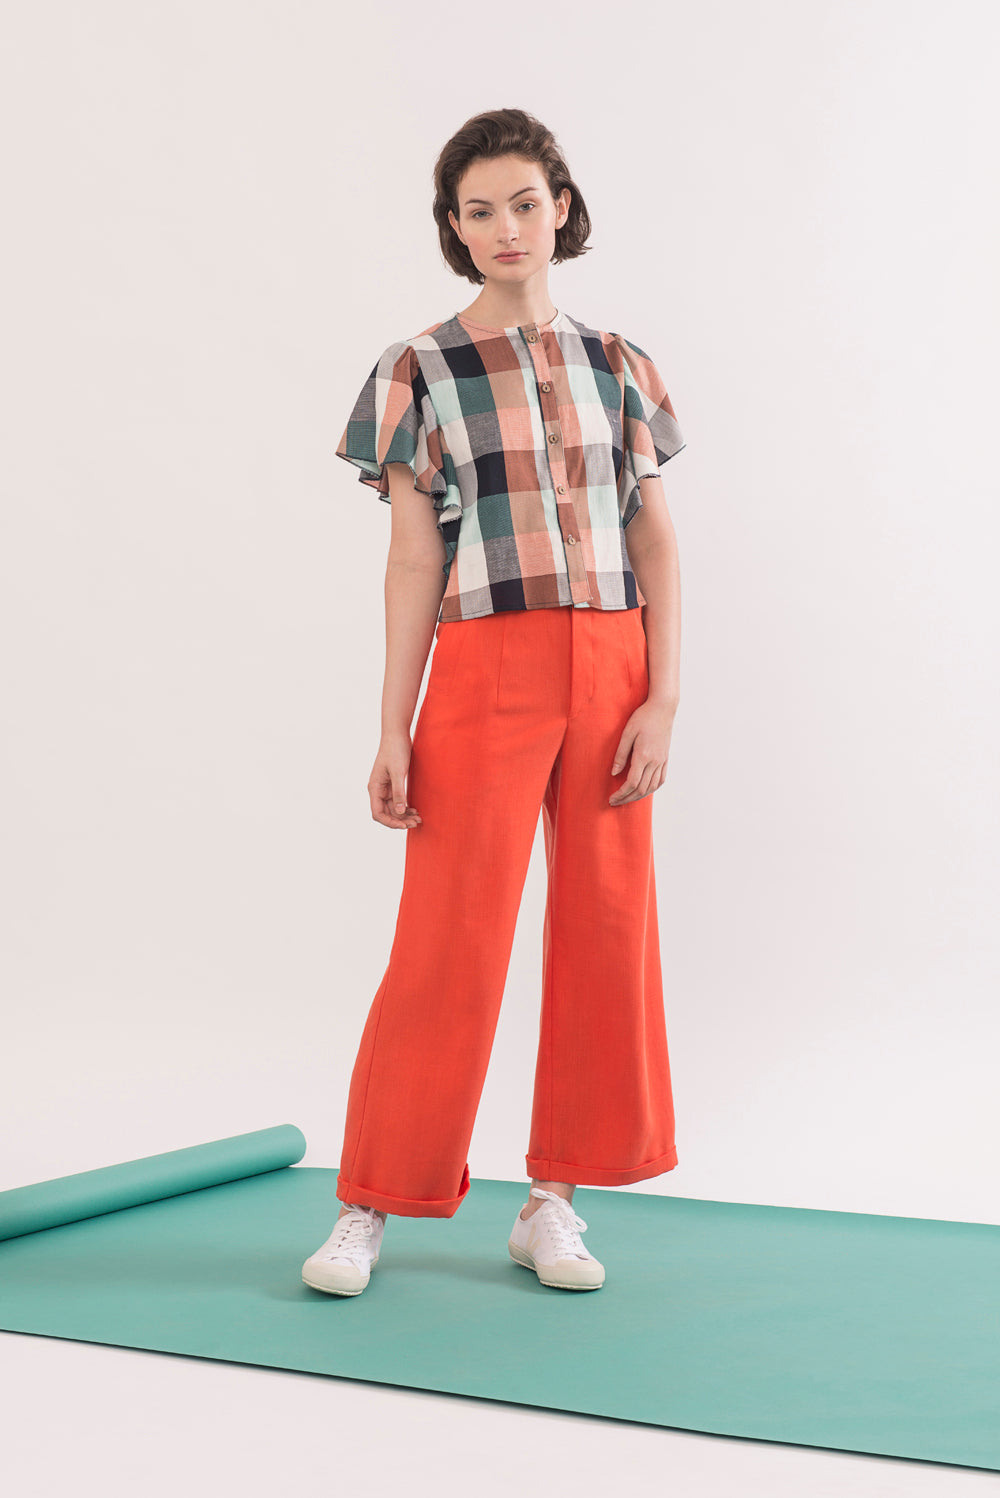 Agnes Trouser by Jennifer Glasgow, Carrot, long fly, flared leg, organic cotton twill, eco fabric, OEKO-TEX Standard 100, sizes XS to XL, made in Montreal Canada